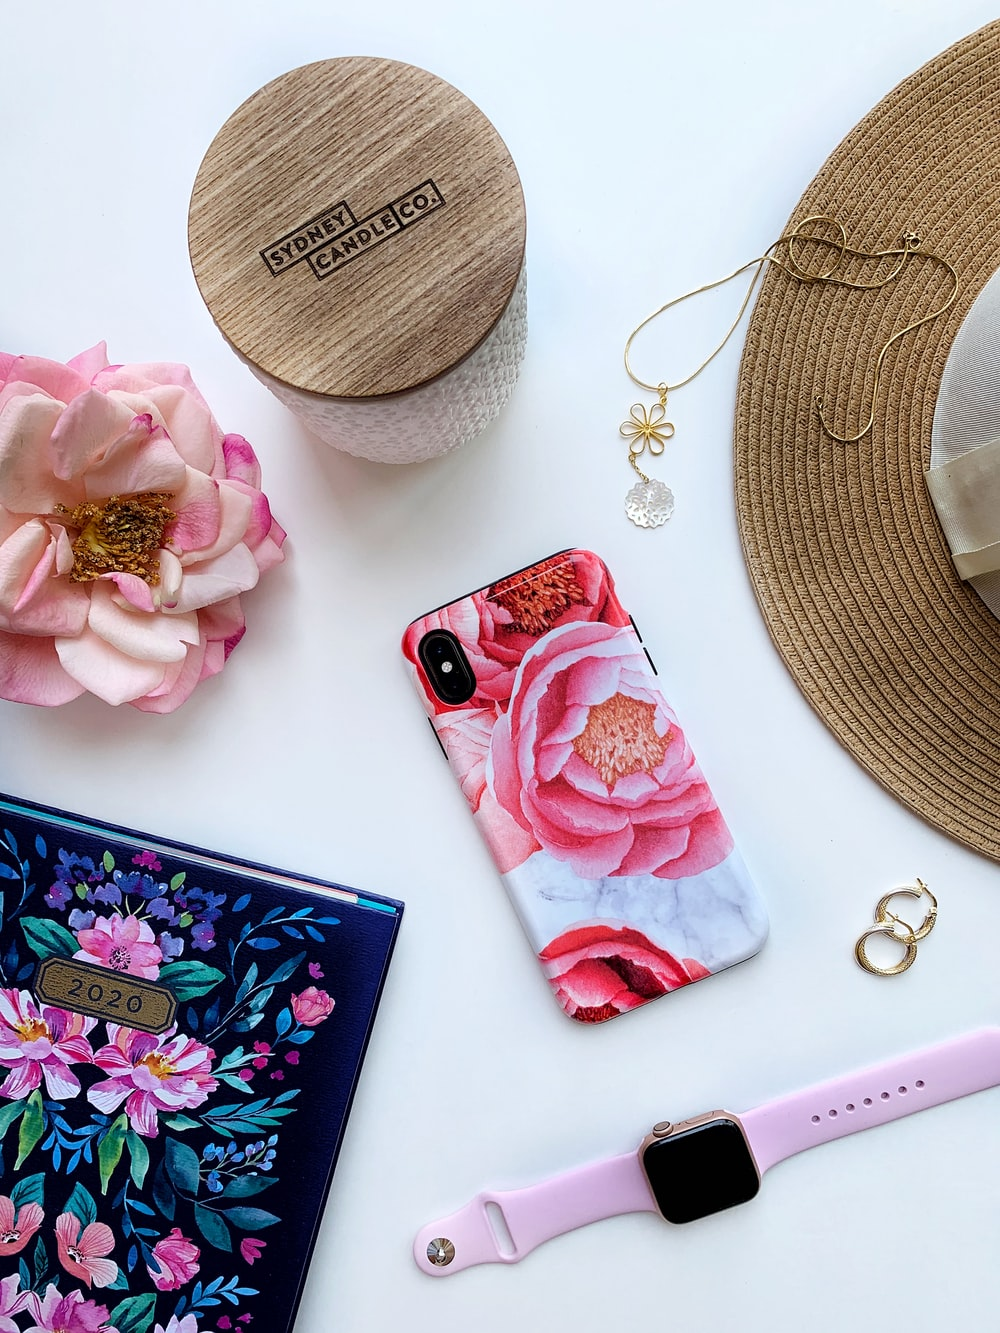 pink iphone case beside gold necklace